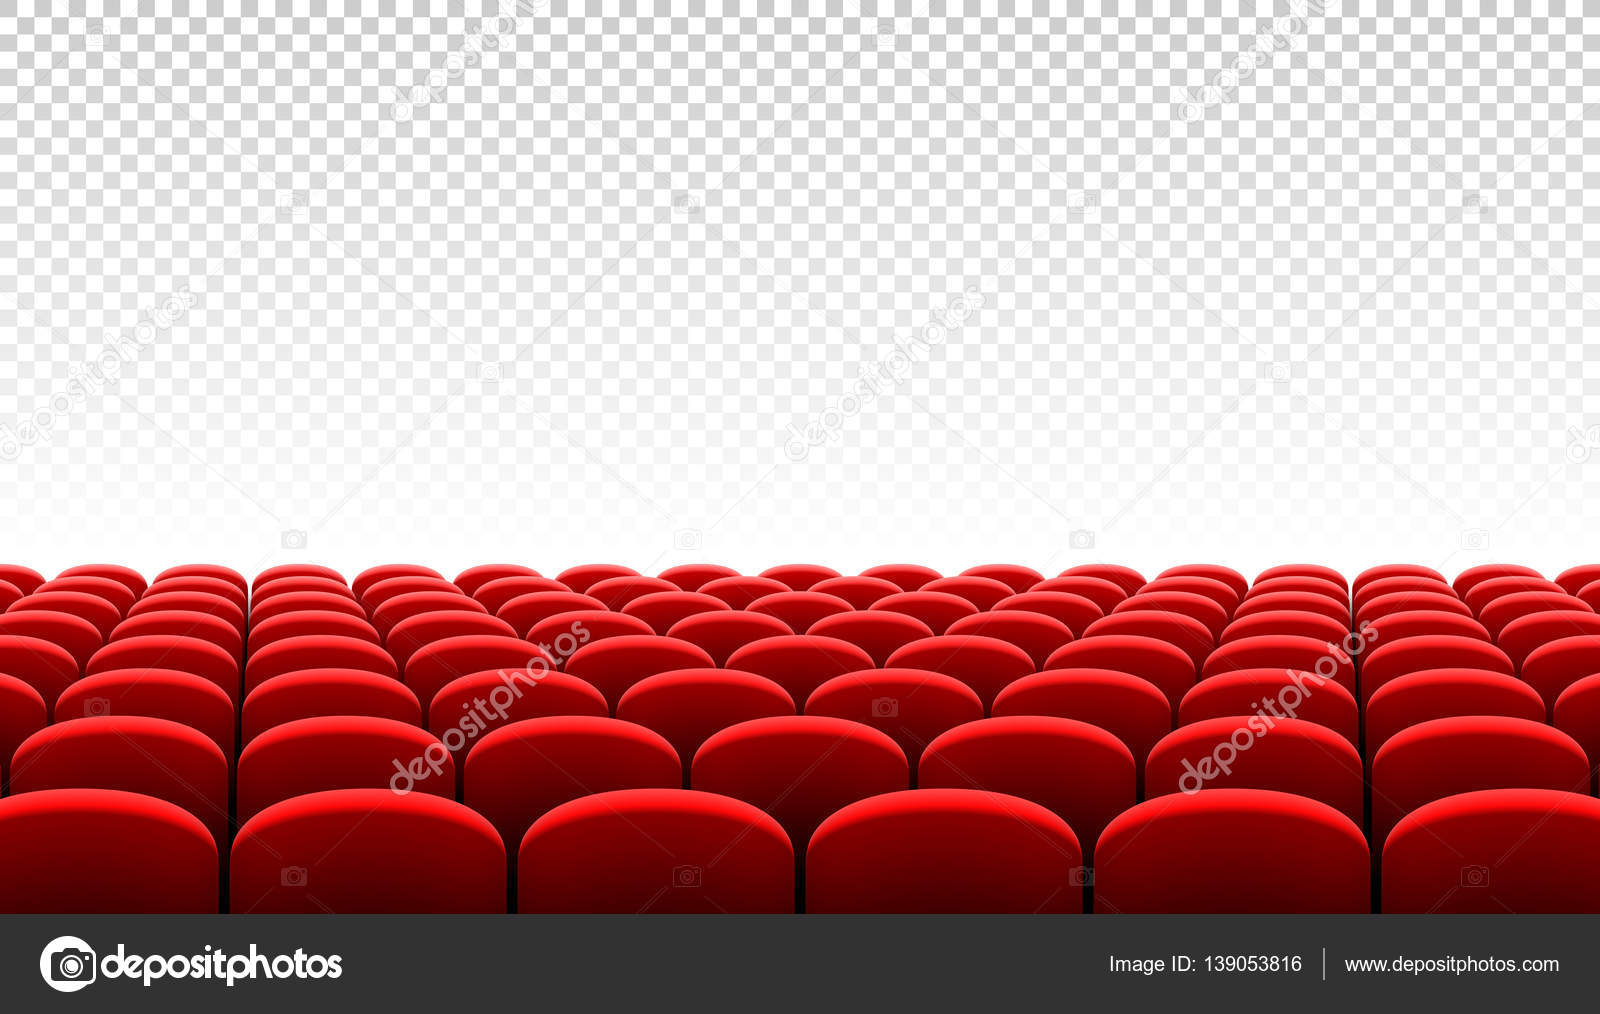 Rows Of Red Cinema Chairs U2014 Stock Vector #139053816